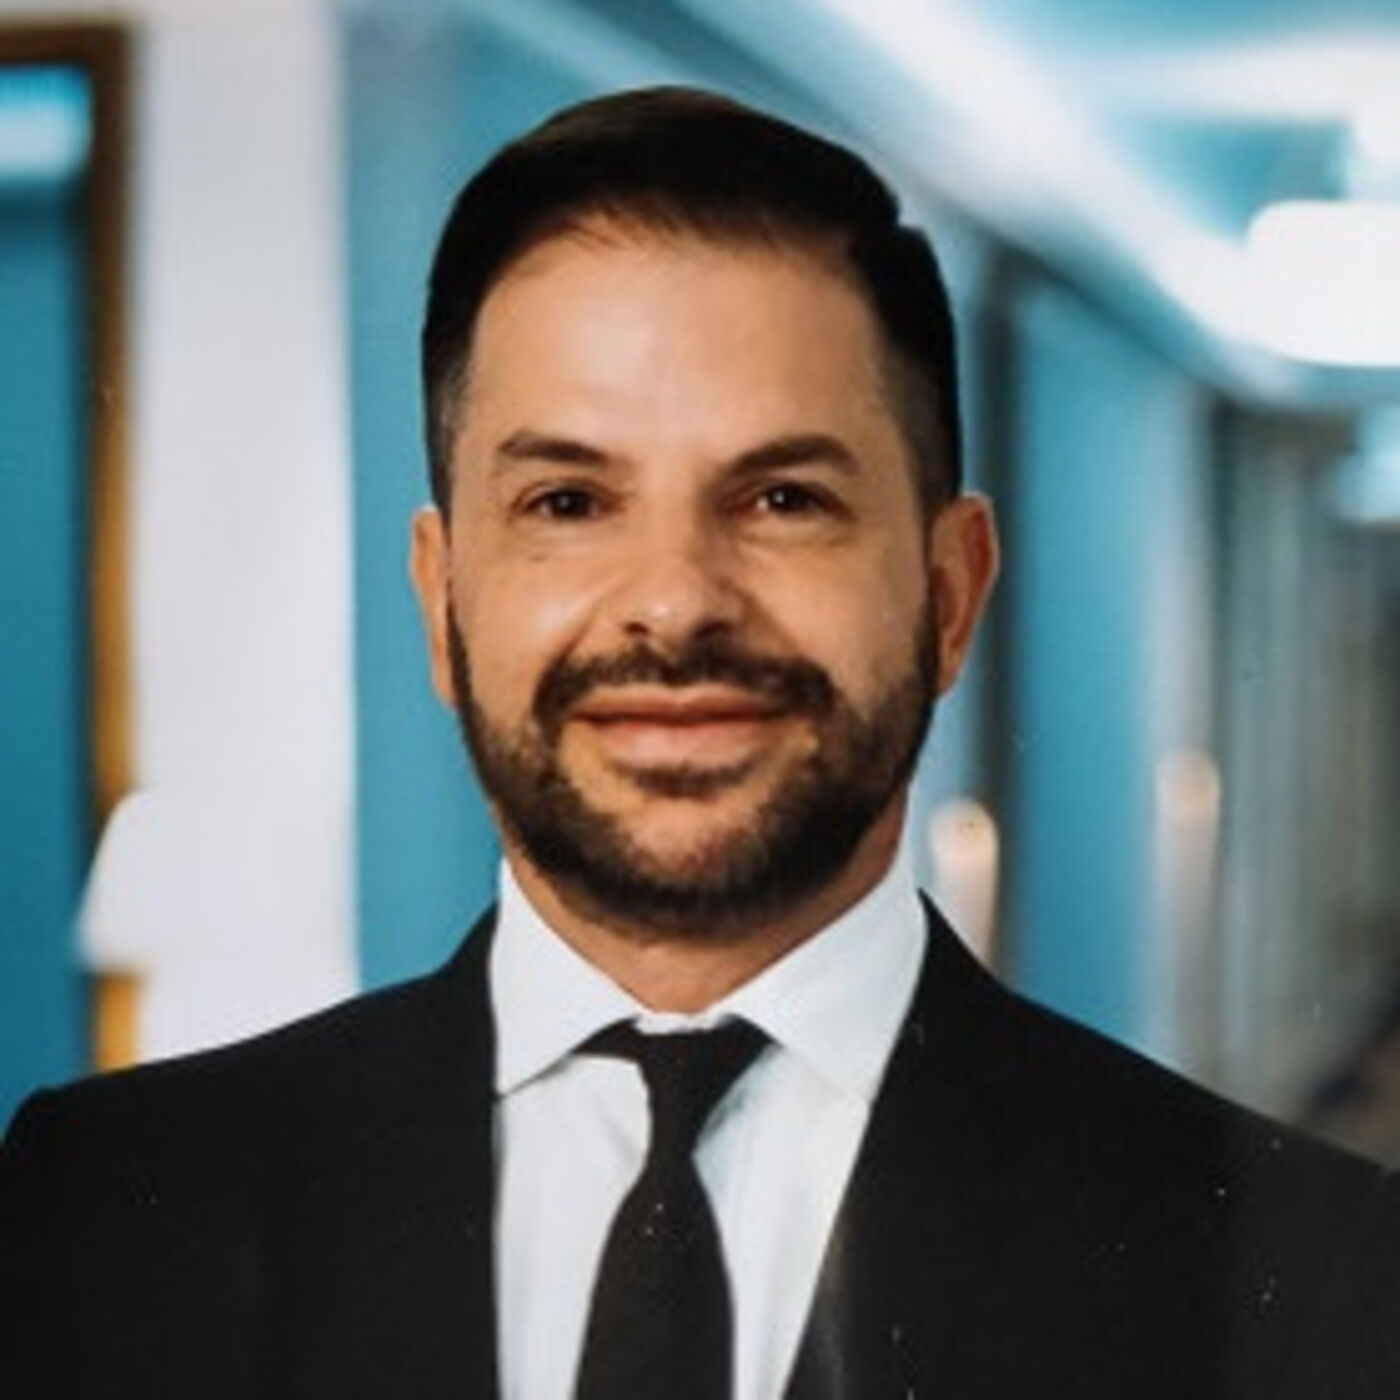 #109: Andreu Marco, Global Supply Chain Executive